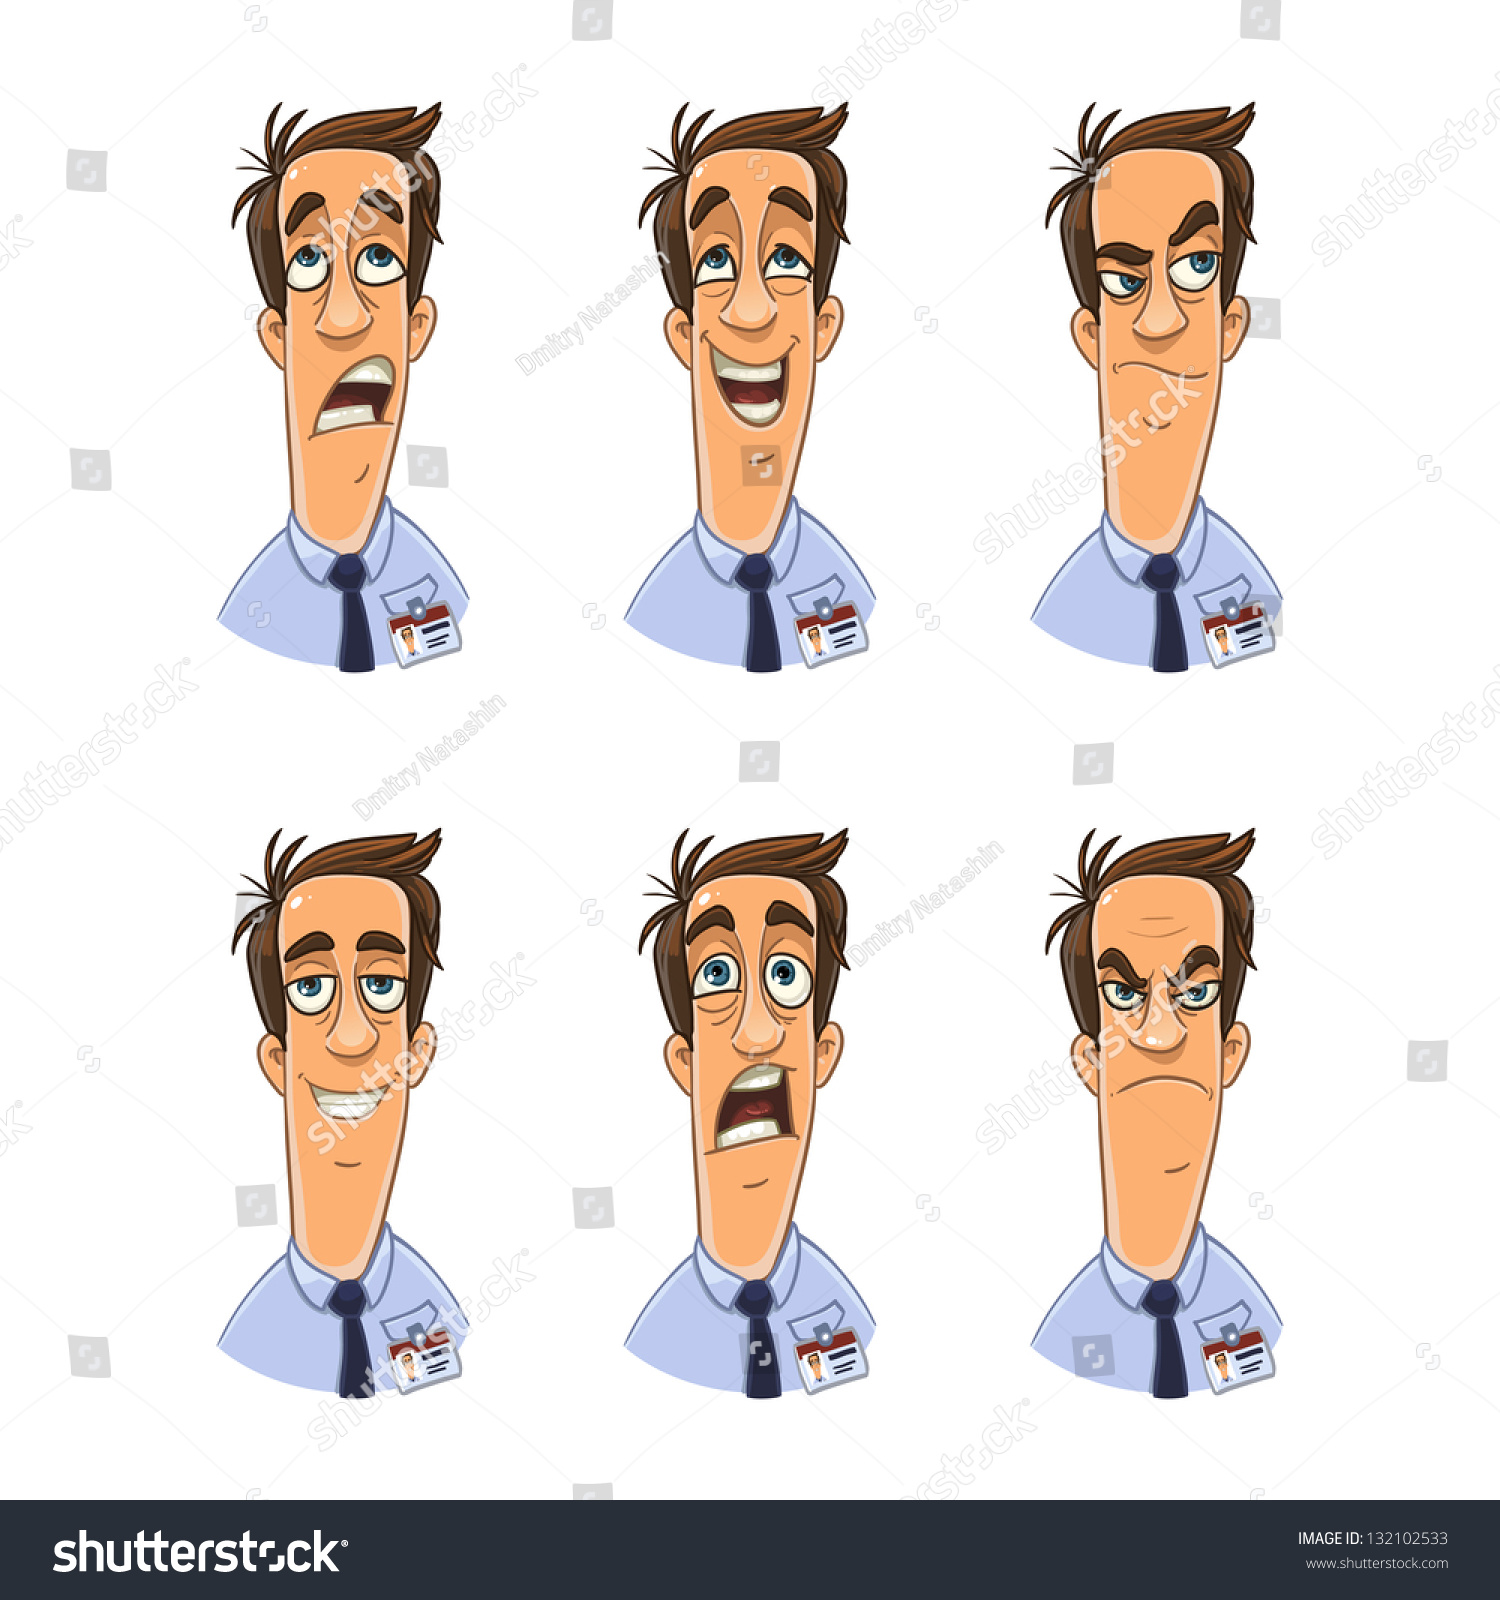 office clerk badge facial expression set stock vector  office clerk badge facial expression set